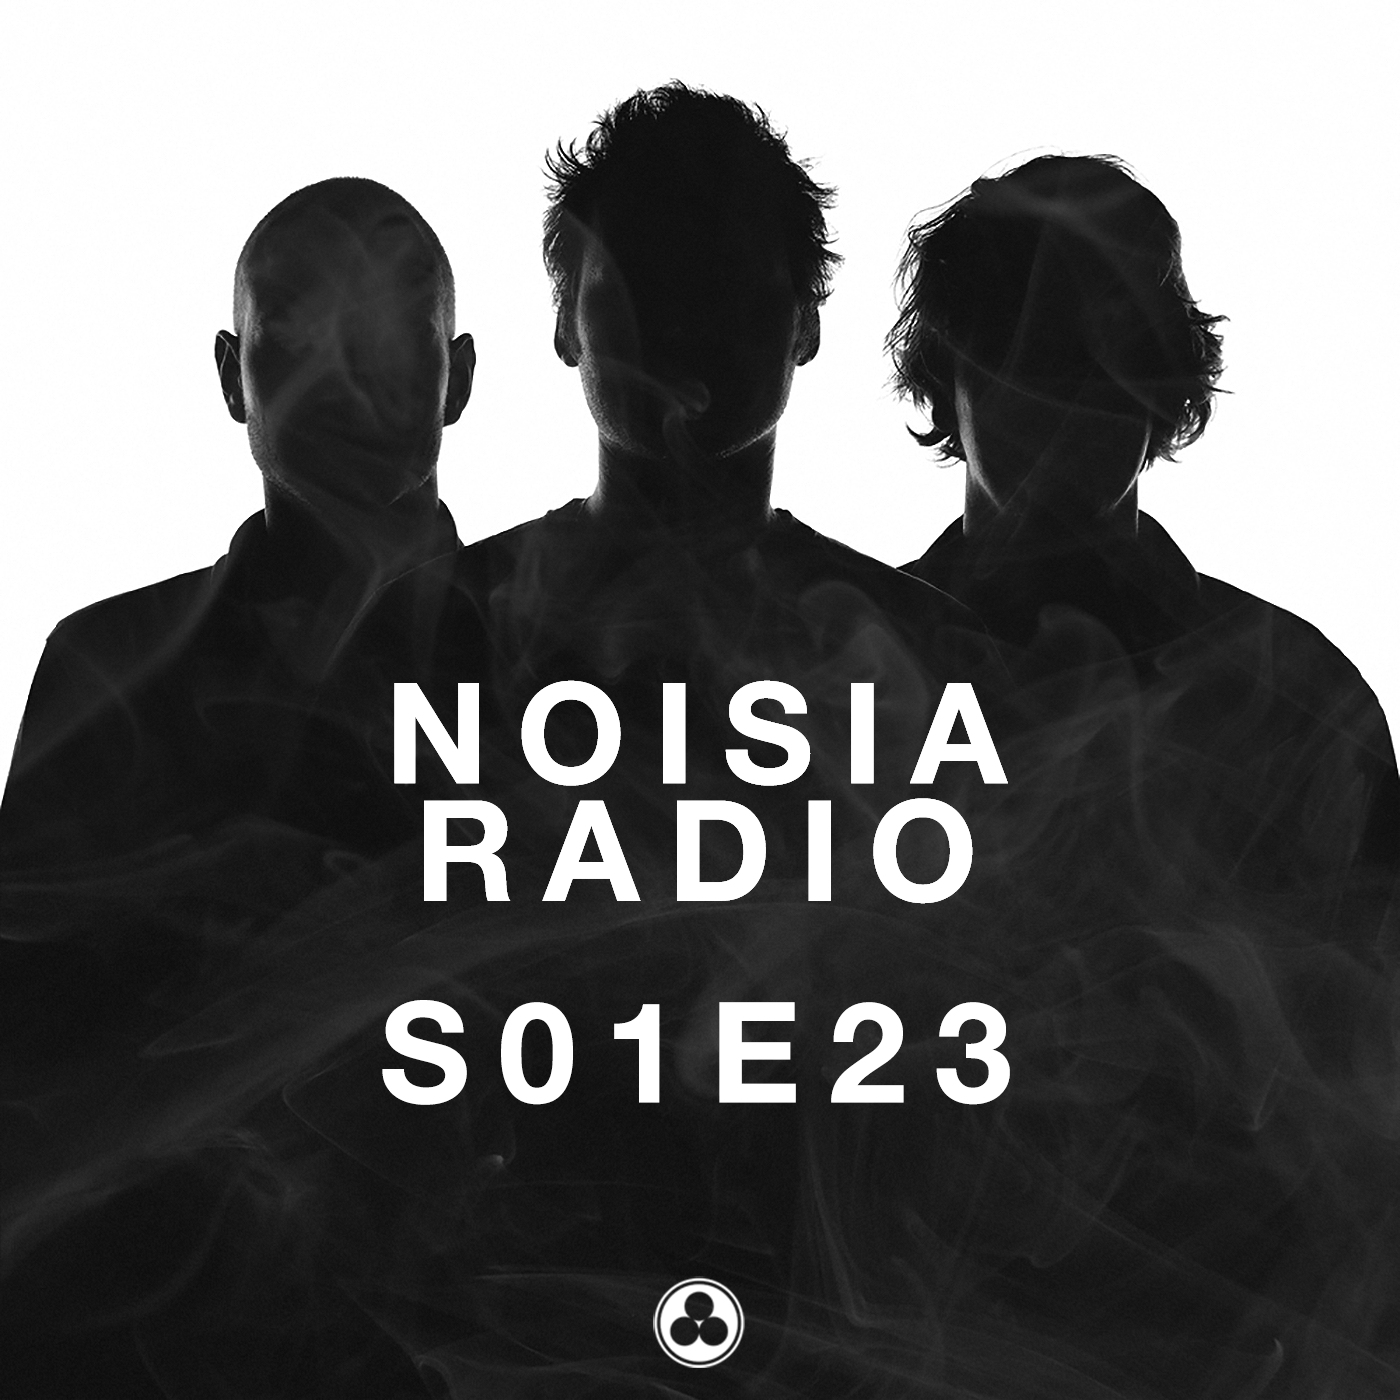 Noisia Radio S01E23 (incl. Xtrah guest mix)